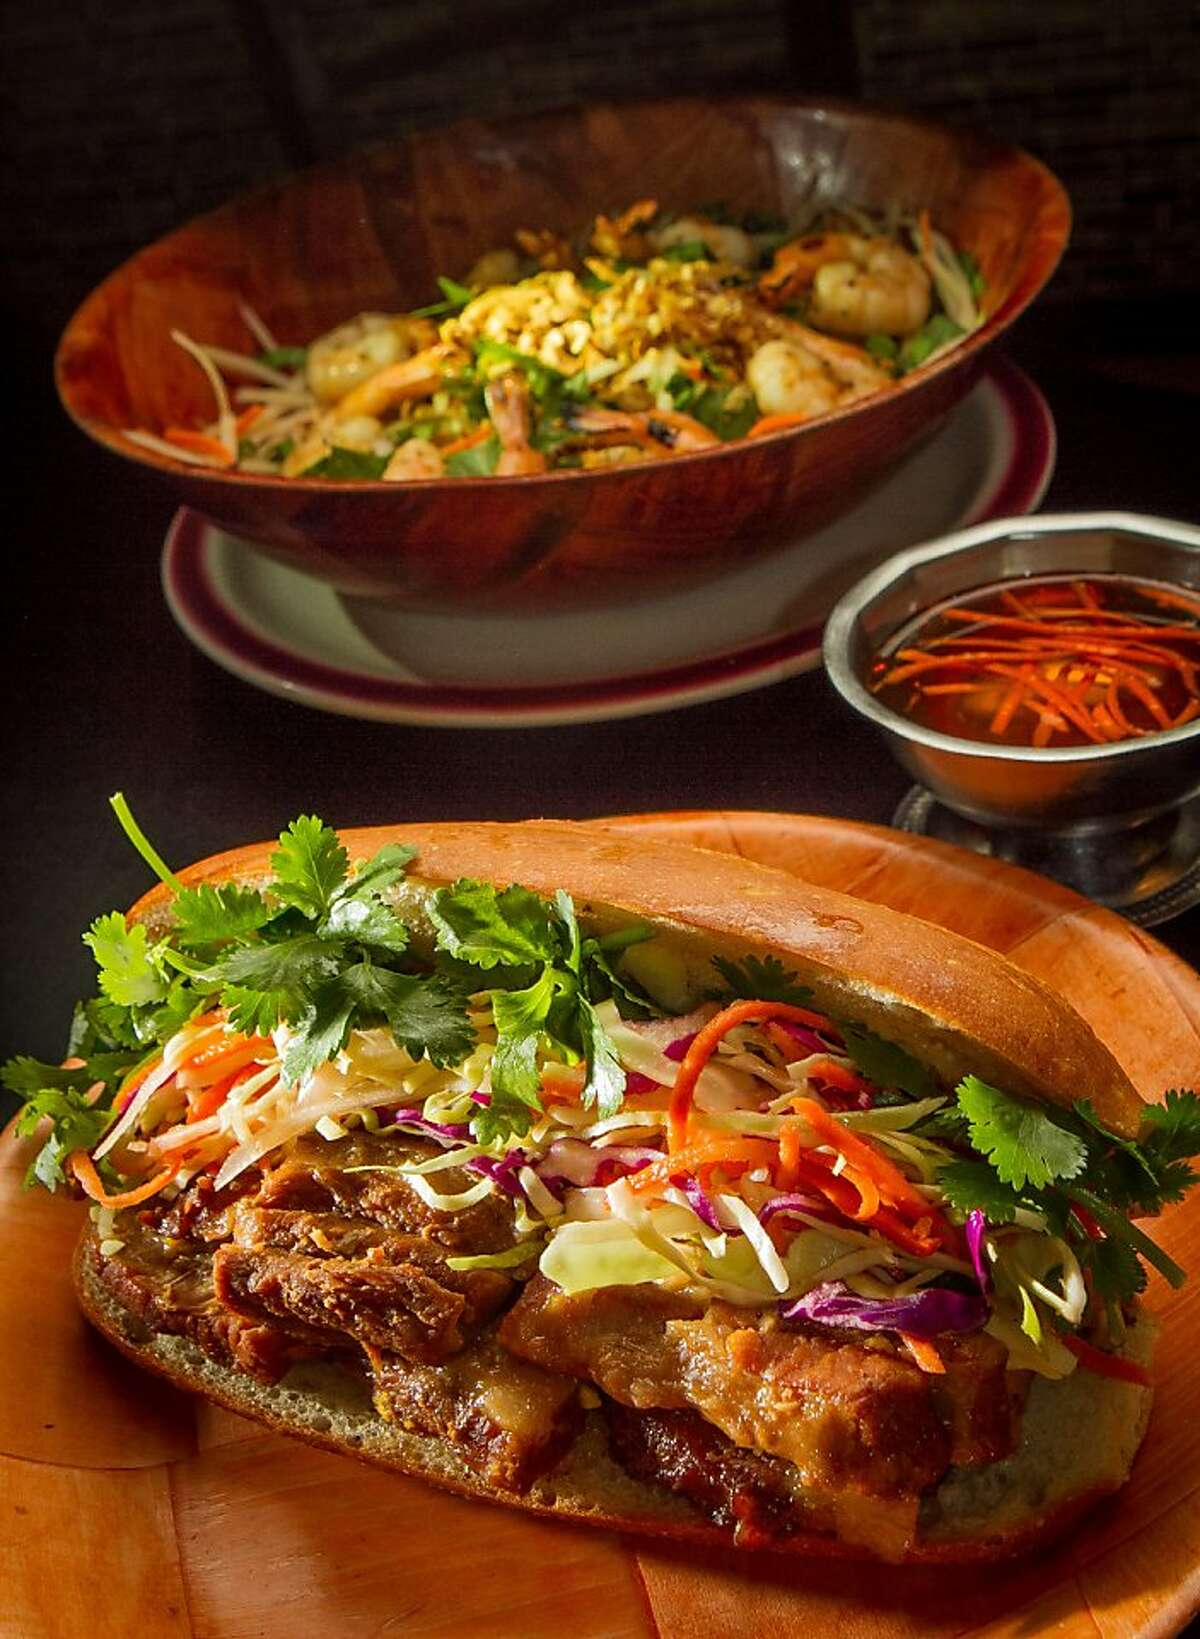 The Pork Belly Sandwich and the Papaya Salad at Cafe Bunn Mi in San Francisco, Calif., is seen on Tuesday, November 20th, 2012.